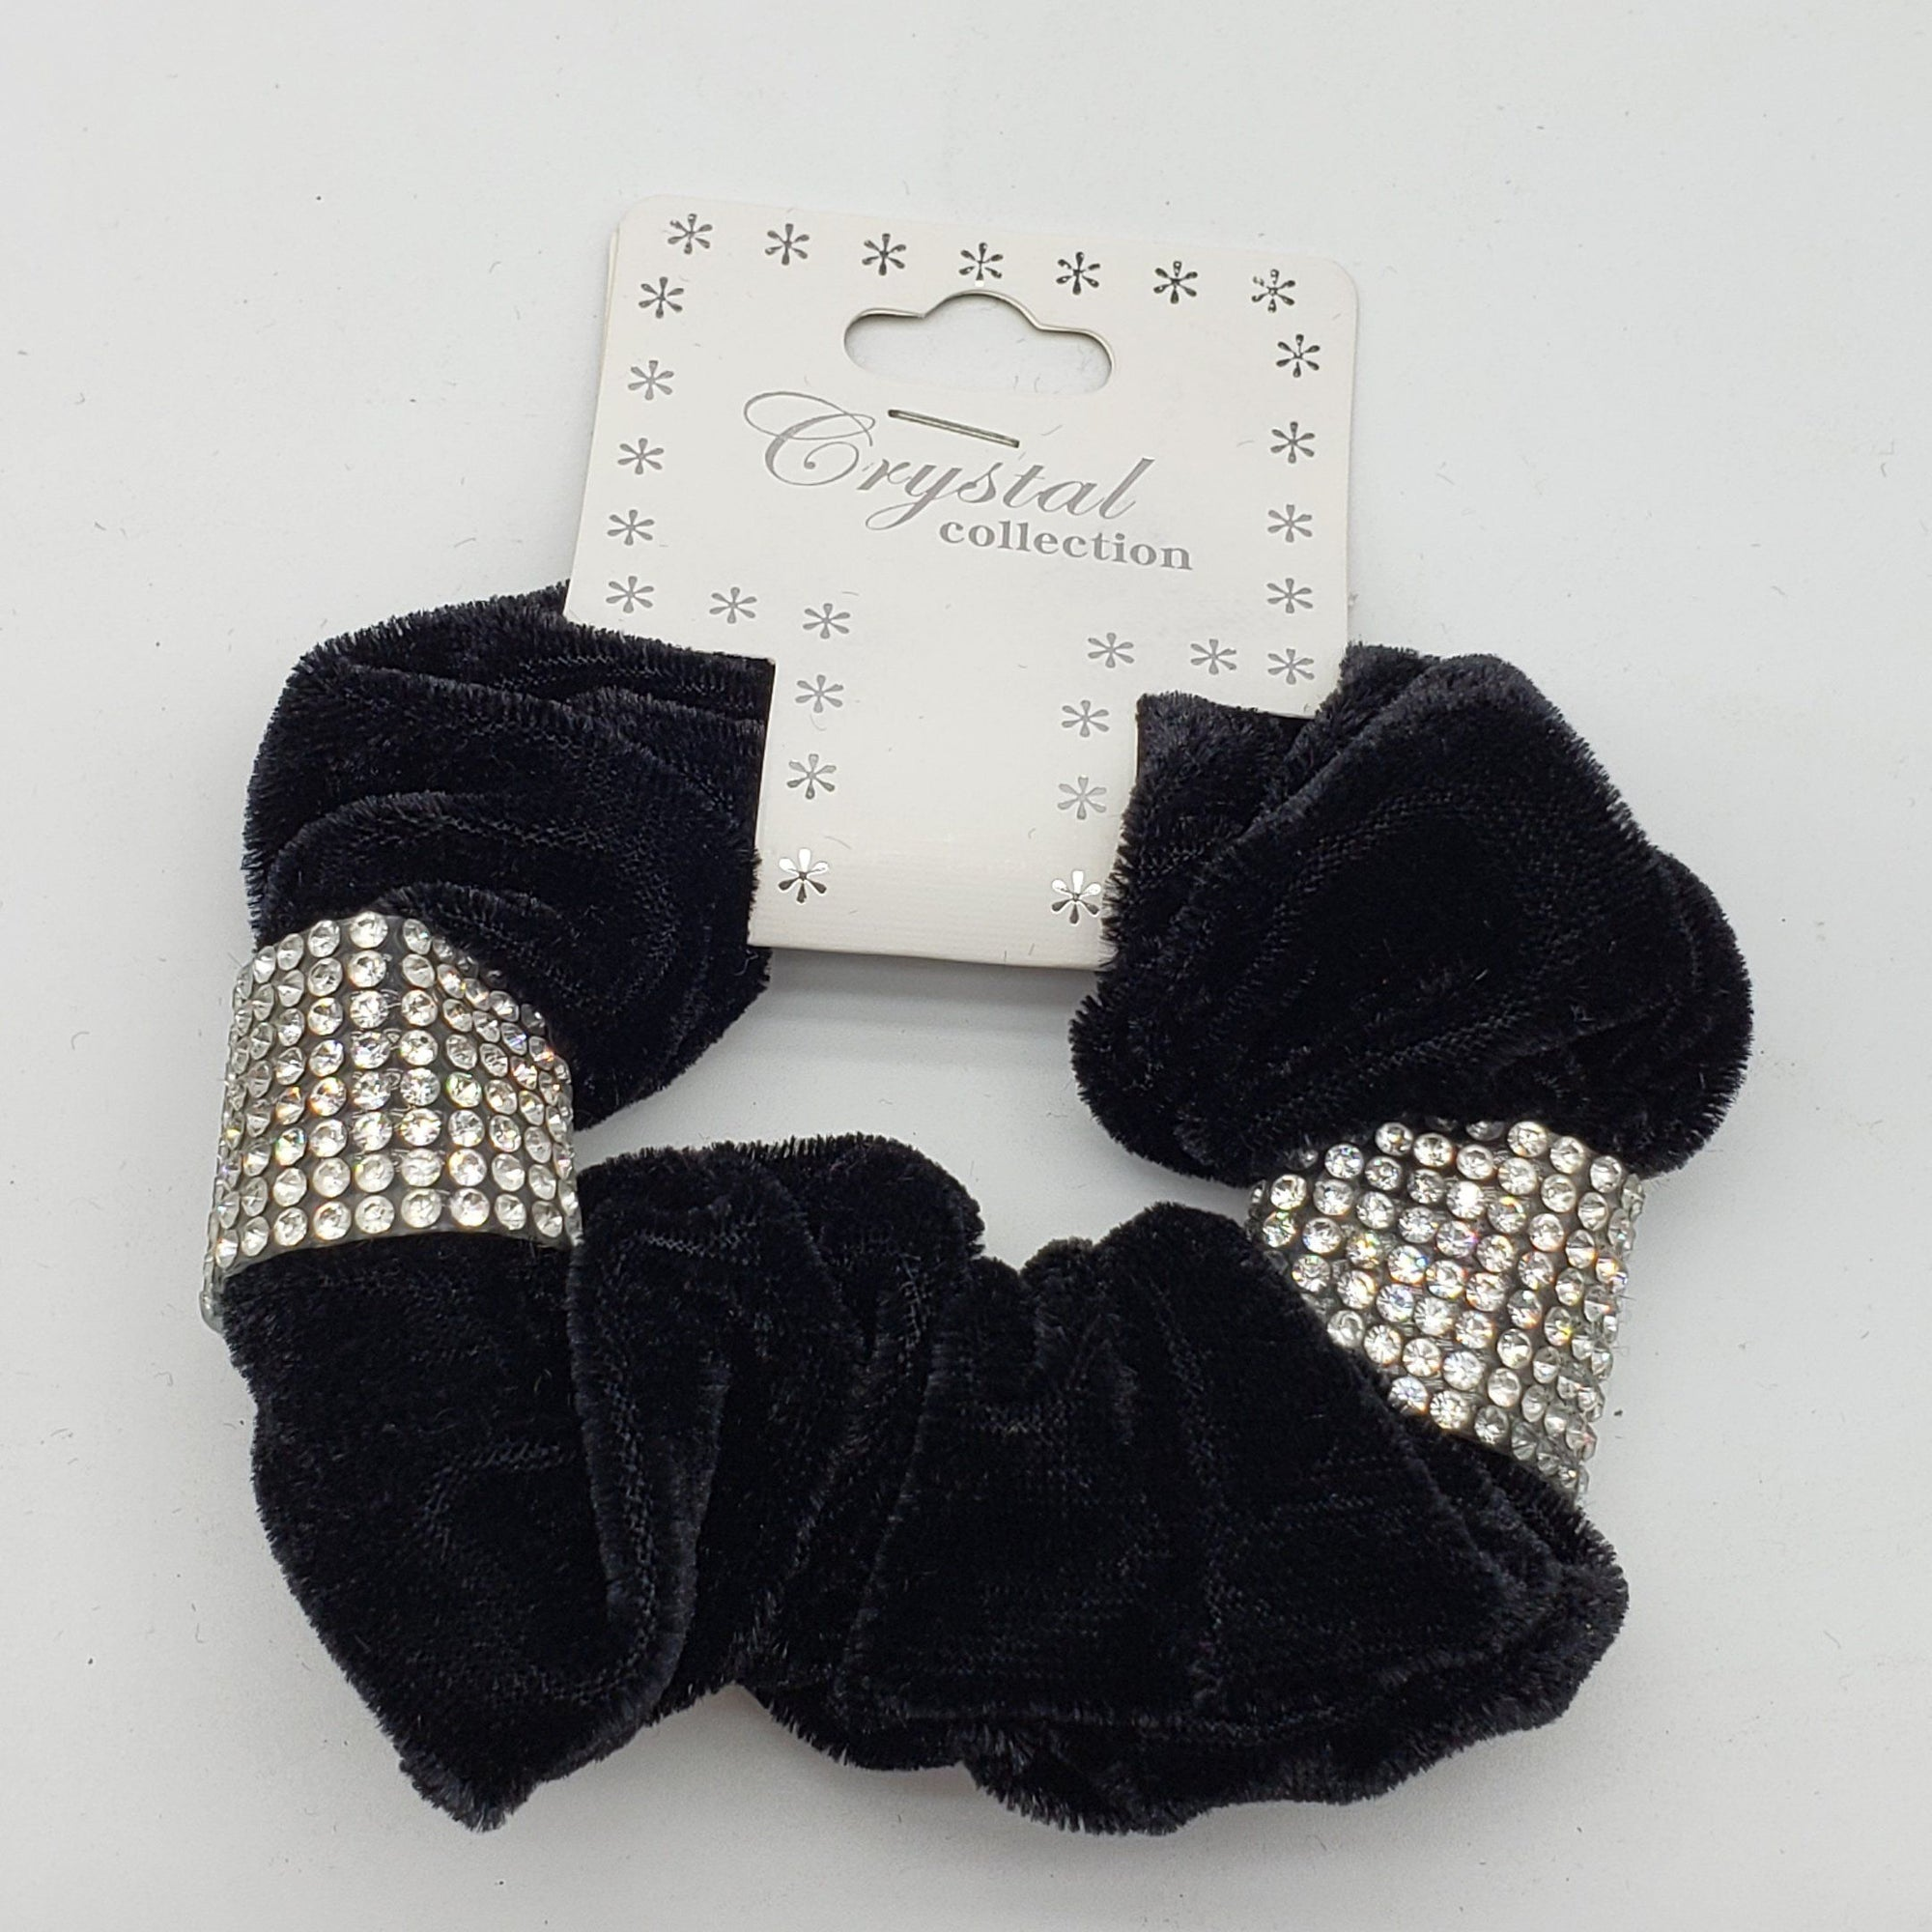 Crystal Collection Velvet Rhinestone Scrunchies #KHS0148 (12PC)